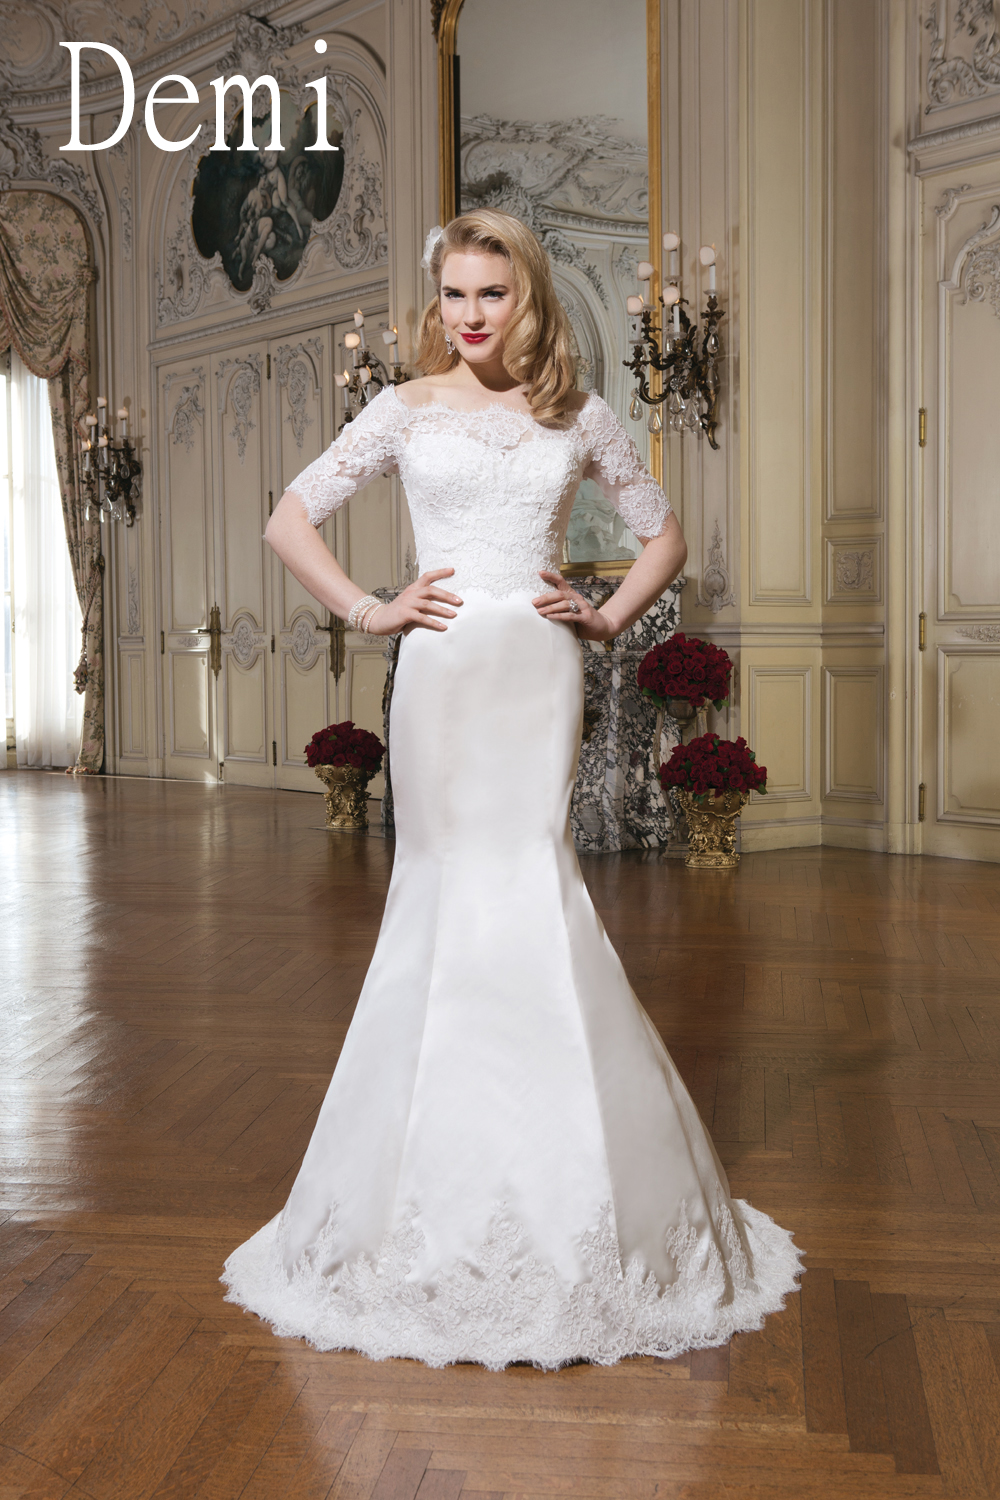 eef81a7936e3 Demi- The off- the shoulder, three-quarter lace sleeves offers a  sophisticated romantic look, while the regal satin gives a touch of chic.  The satin gown is ...